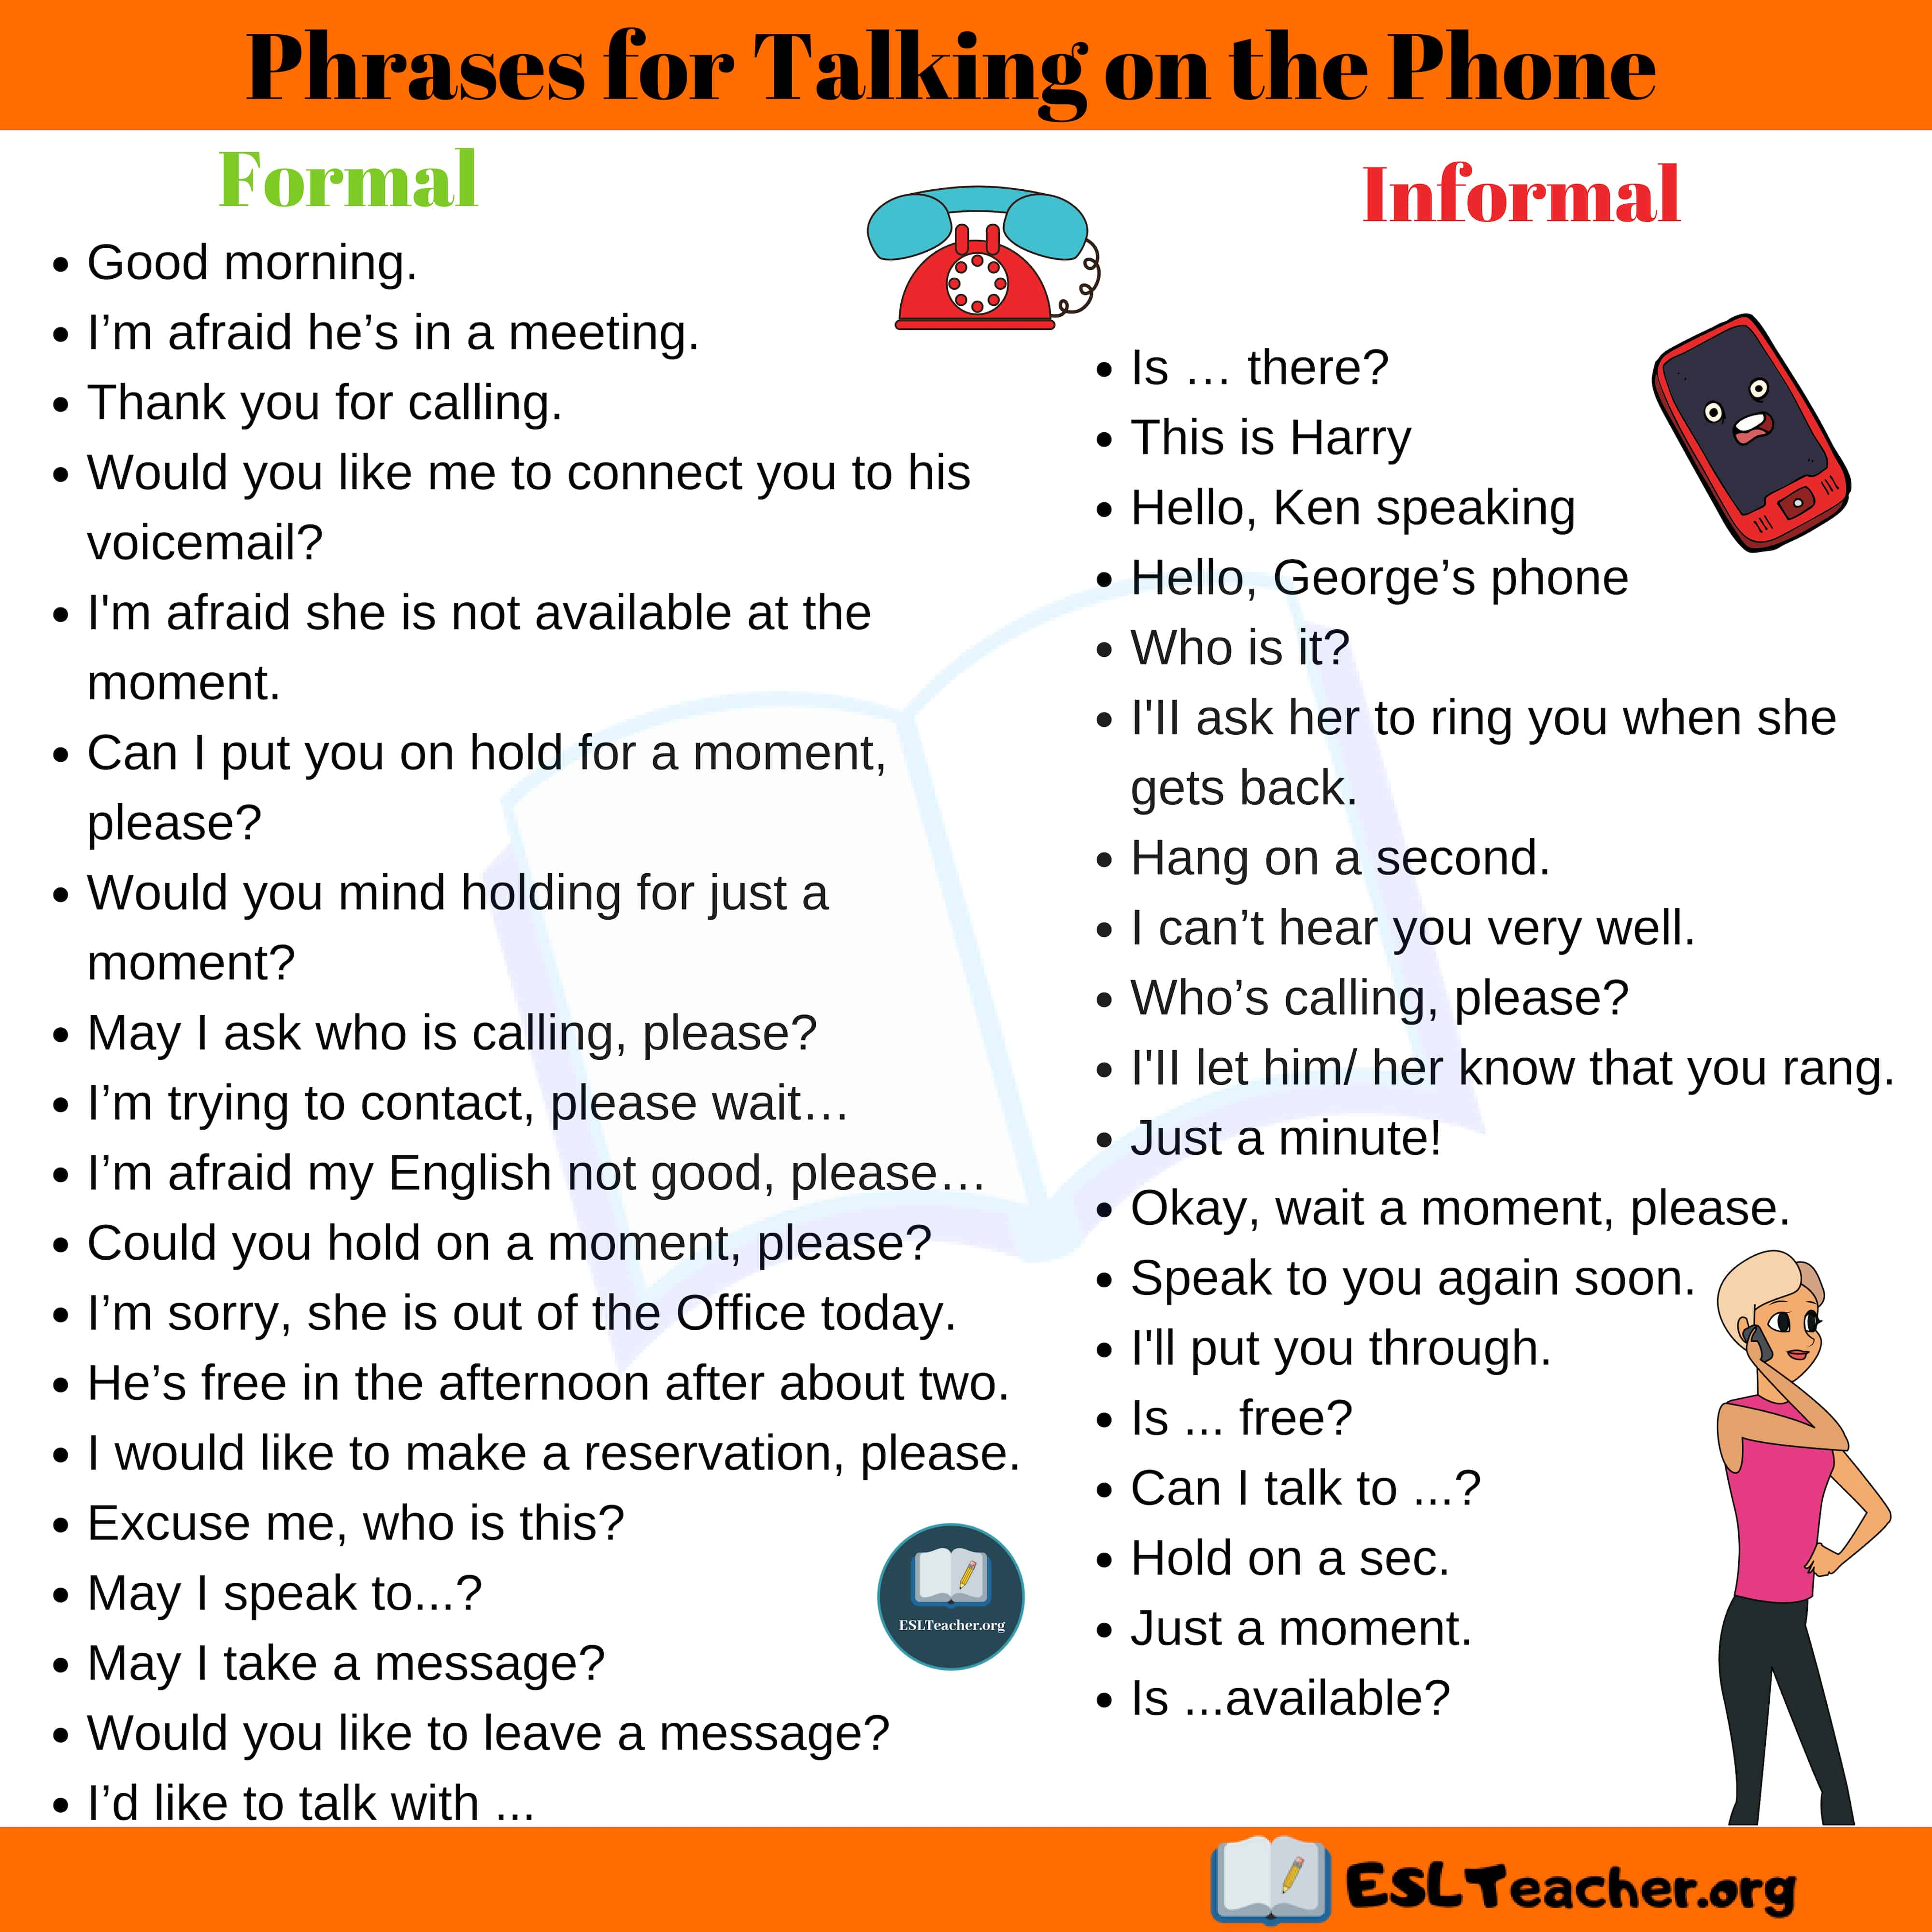 Useful Phrases for Talking on the Phone